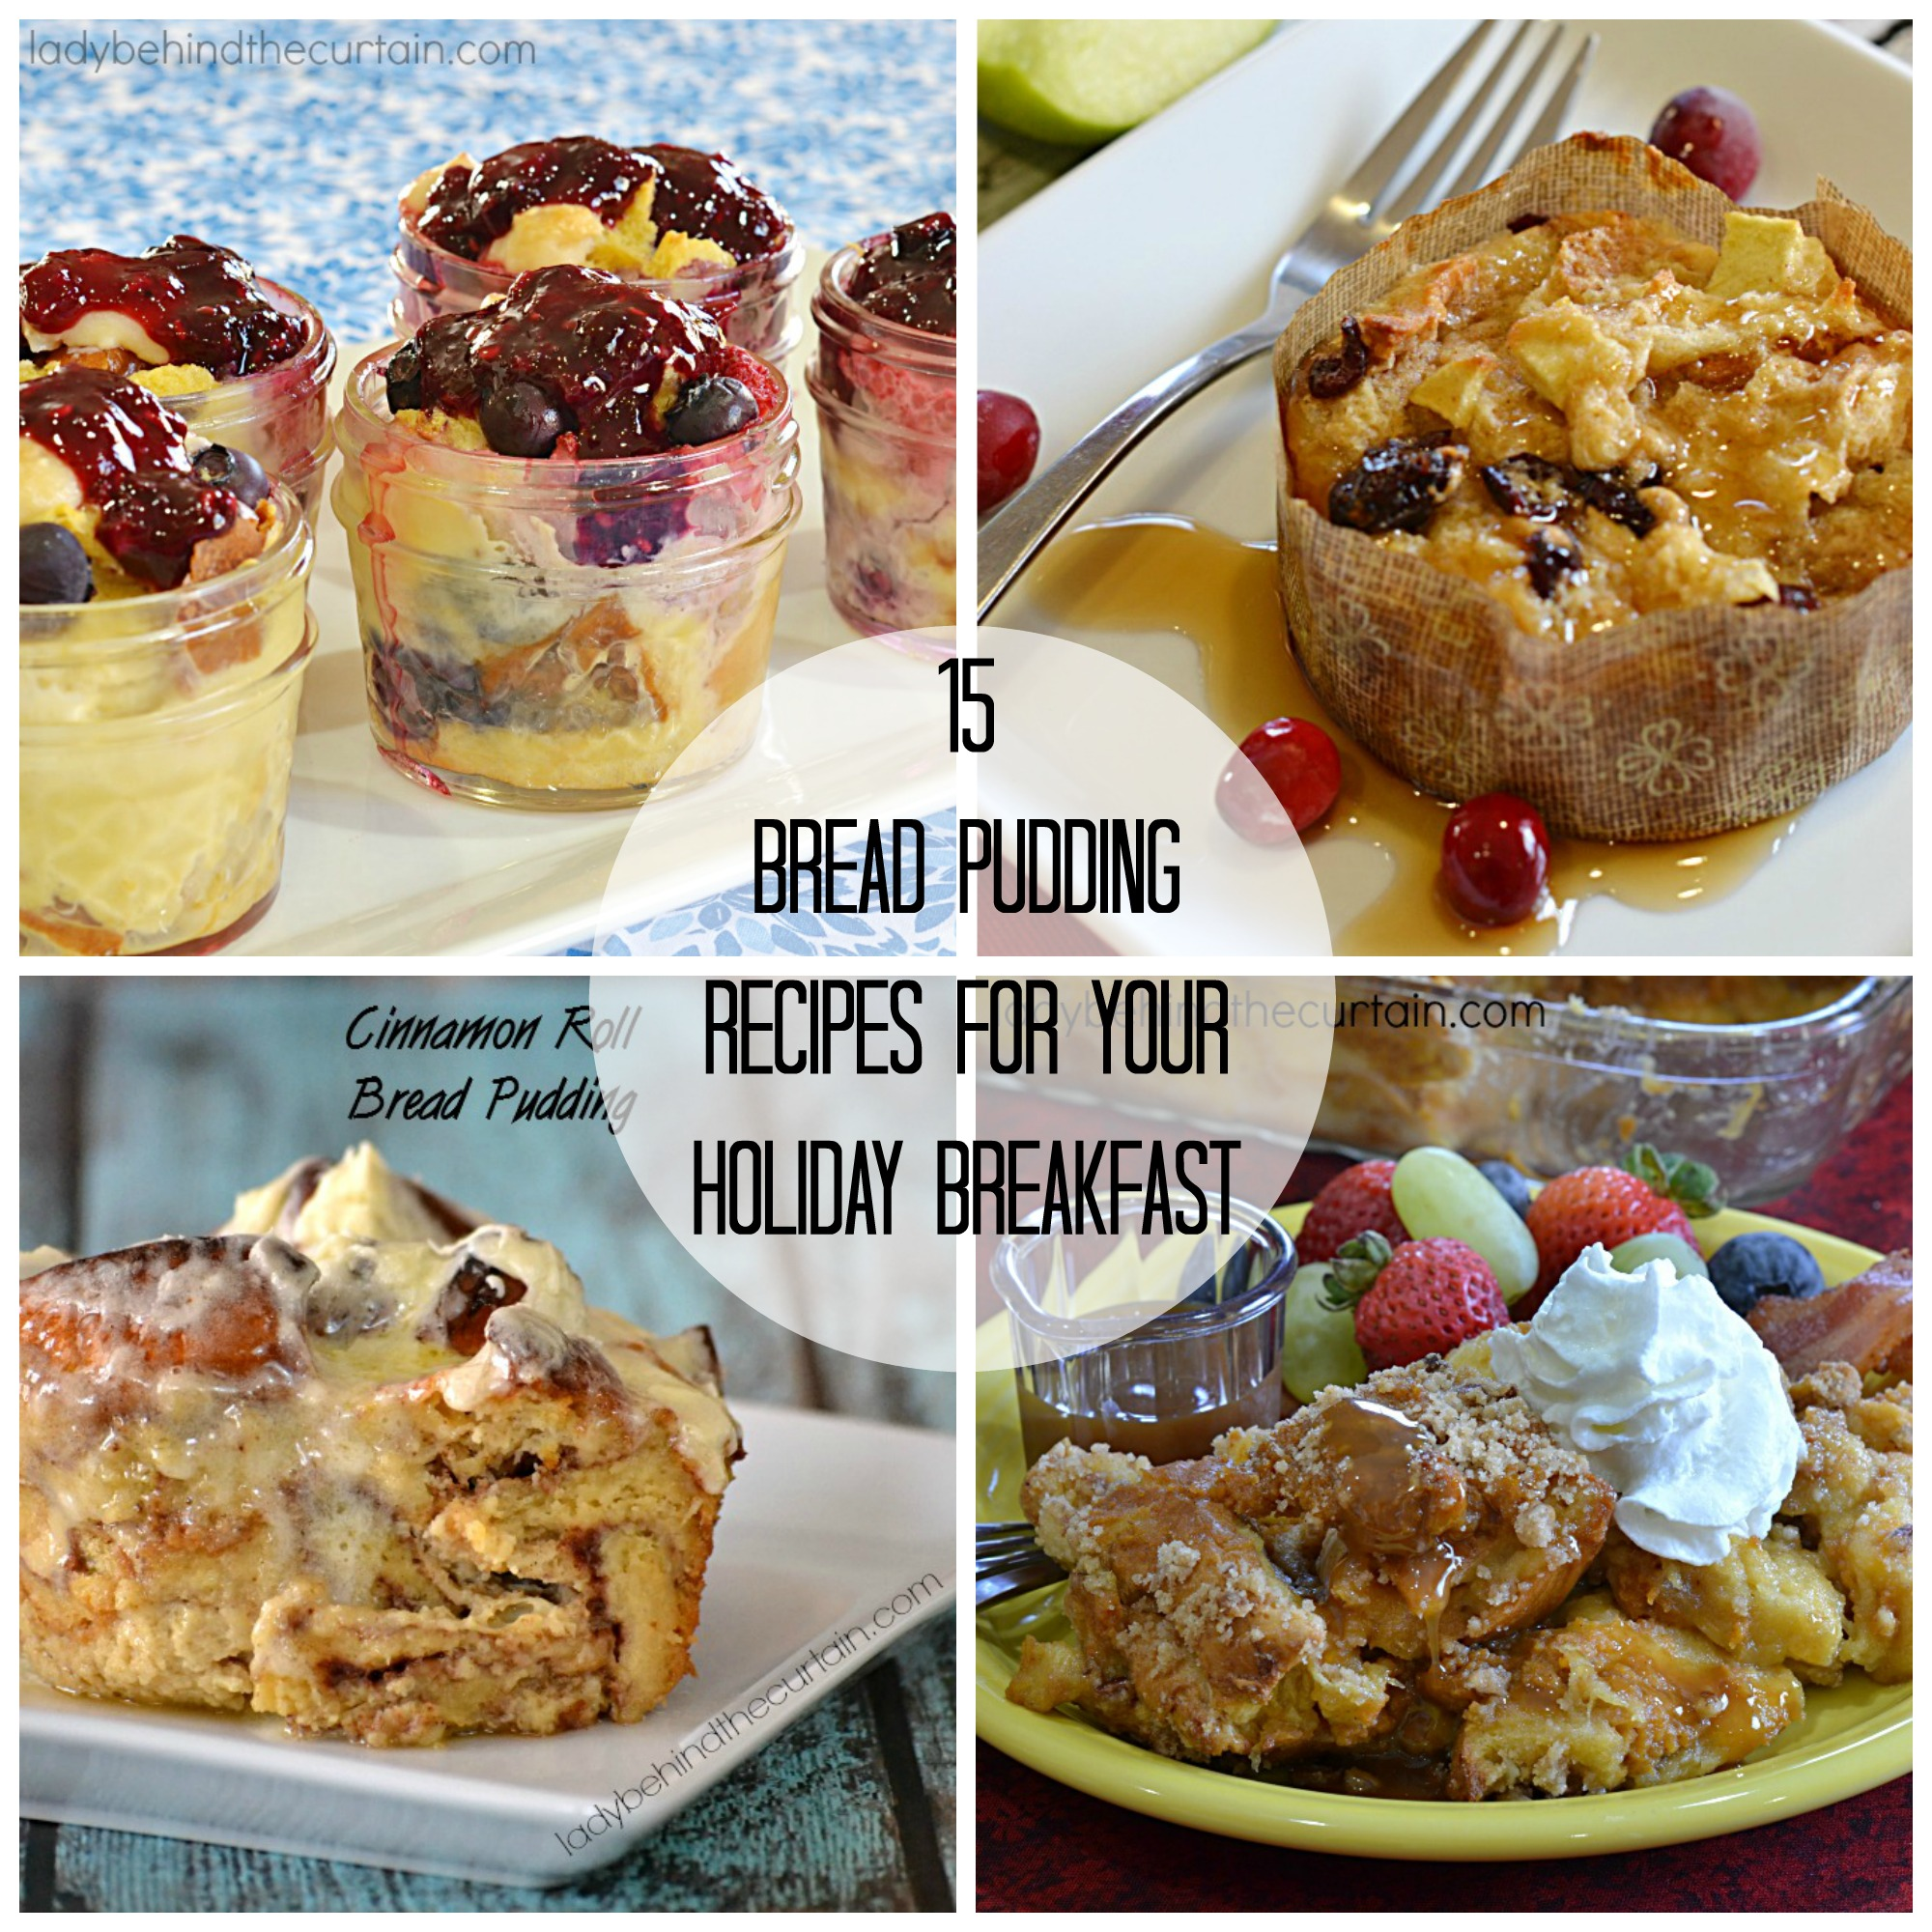 15 Bread Pudding Recipes for Your Holiday Breakfast | From sweet to savory you can not deny that bread pudding is one of Americas favorite breakfast comfort foods.